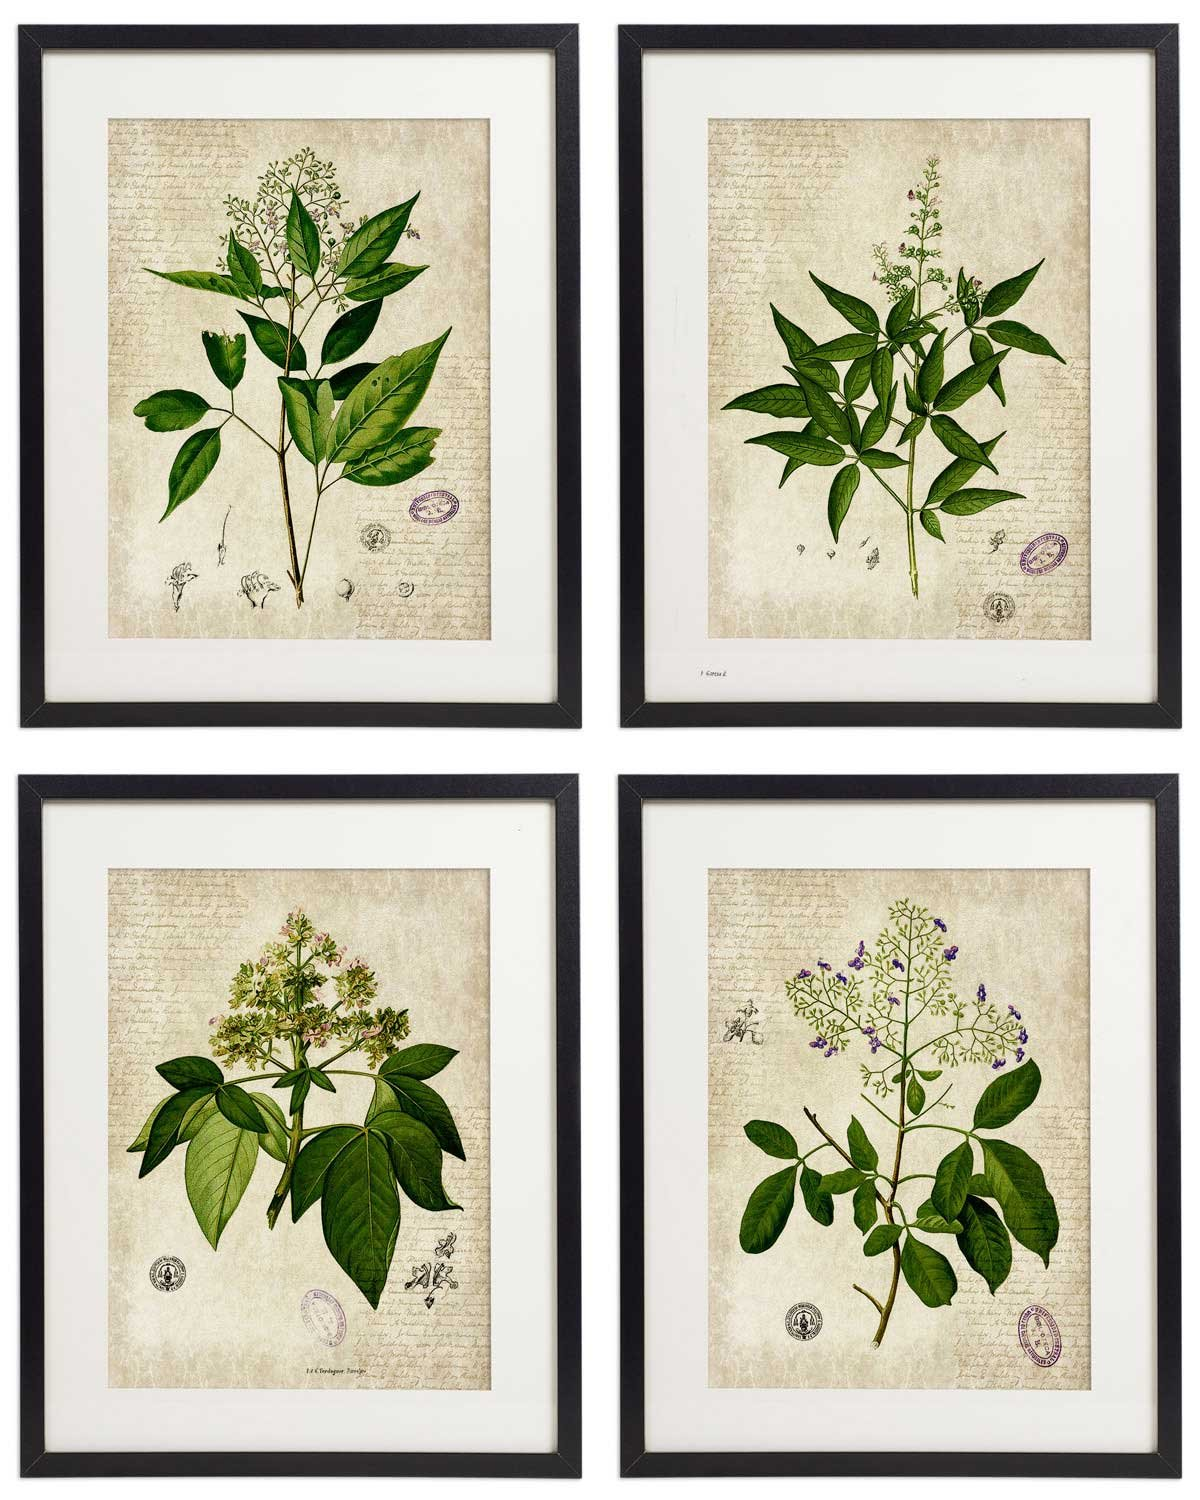 IDIOPIX Vintage Botanical Floral Print Art Home Wall Art Print No.4 Set of 4 Prints UNFRAMED by IDIOPIX